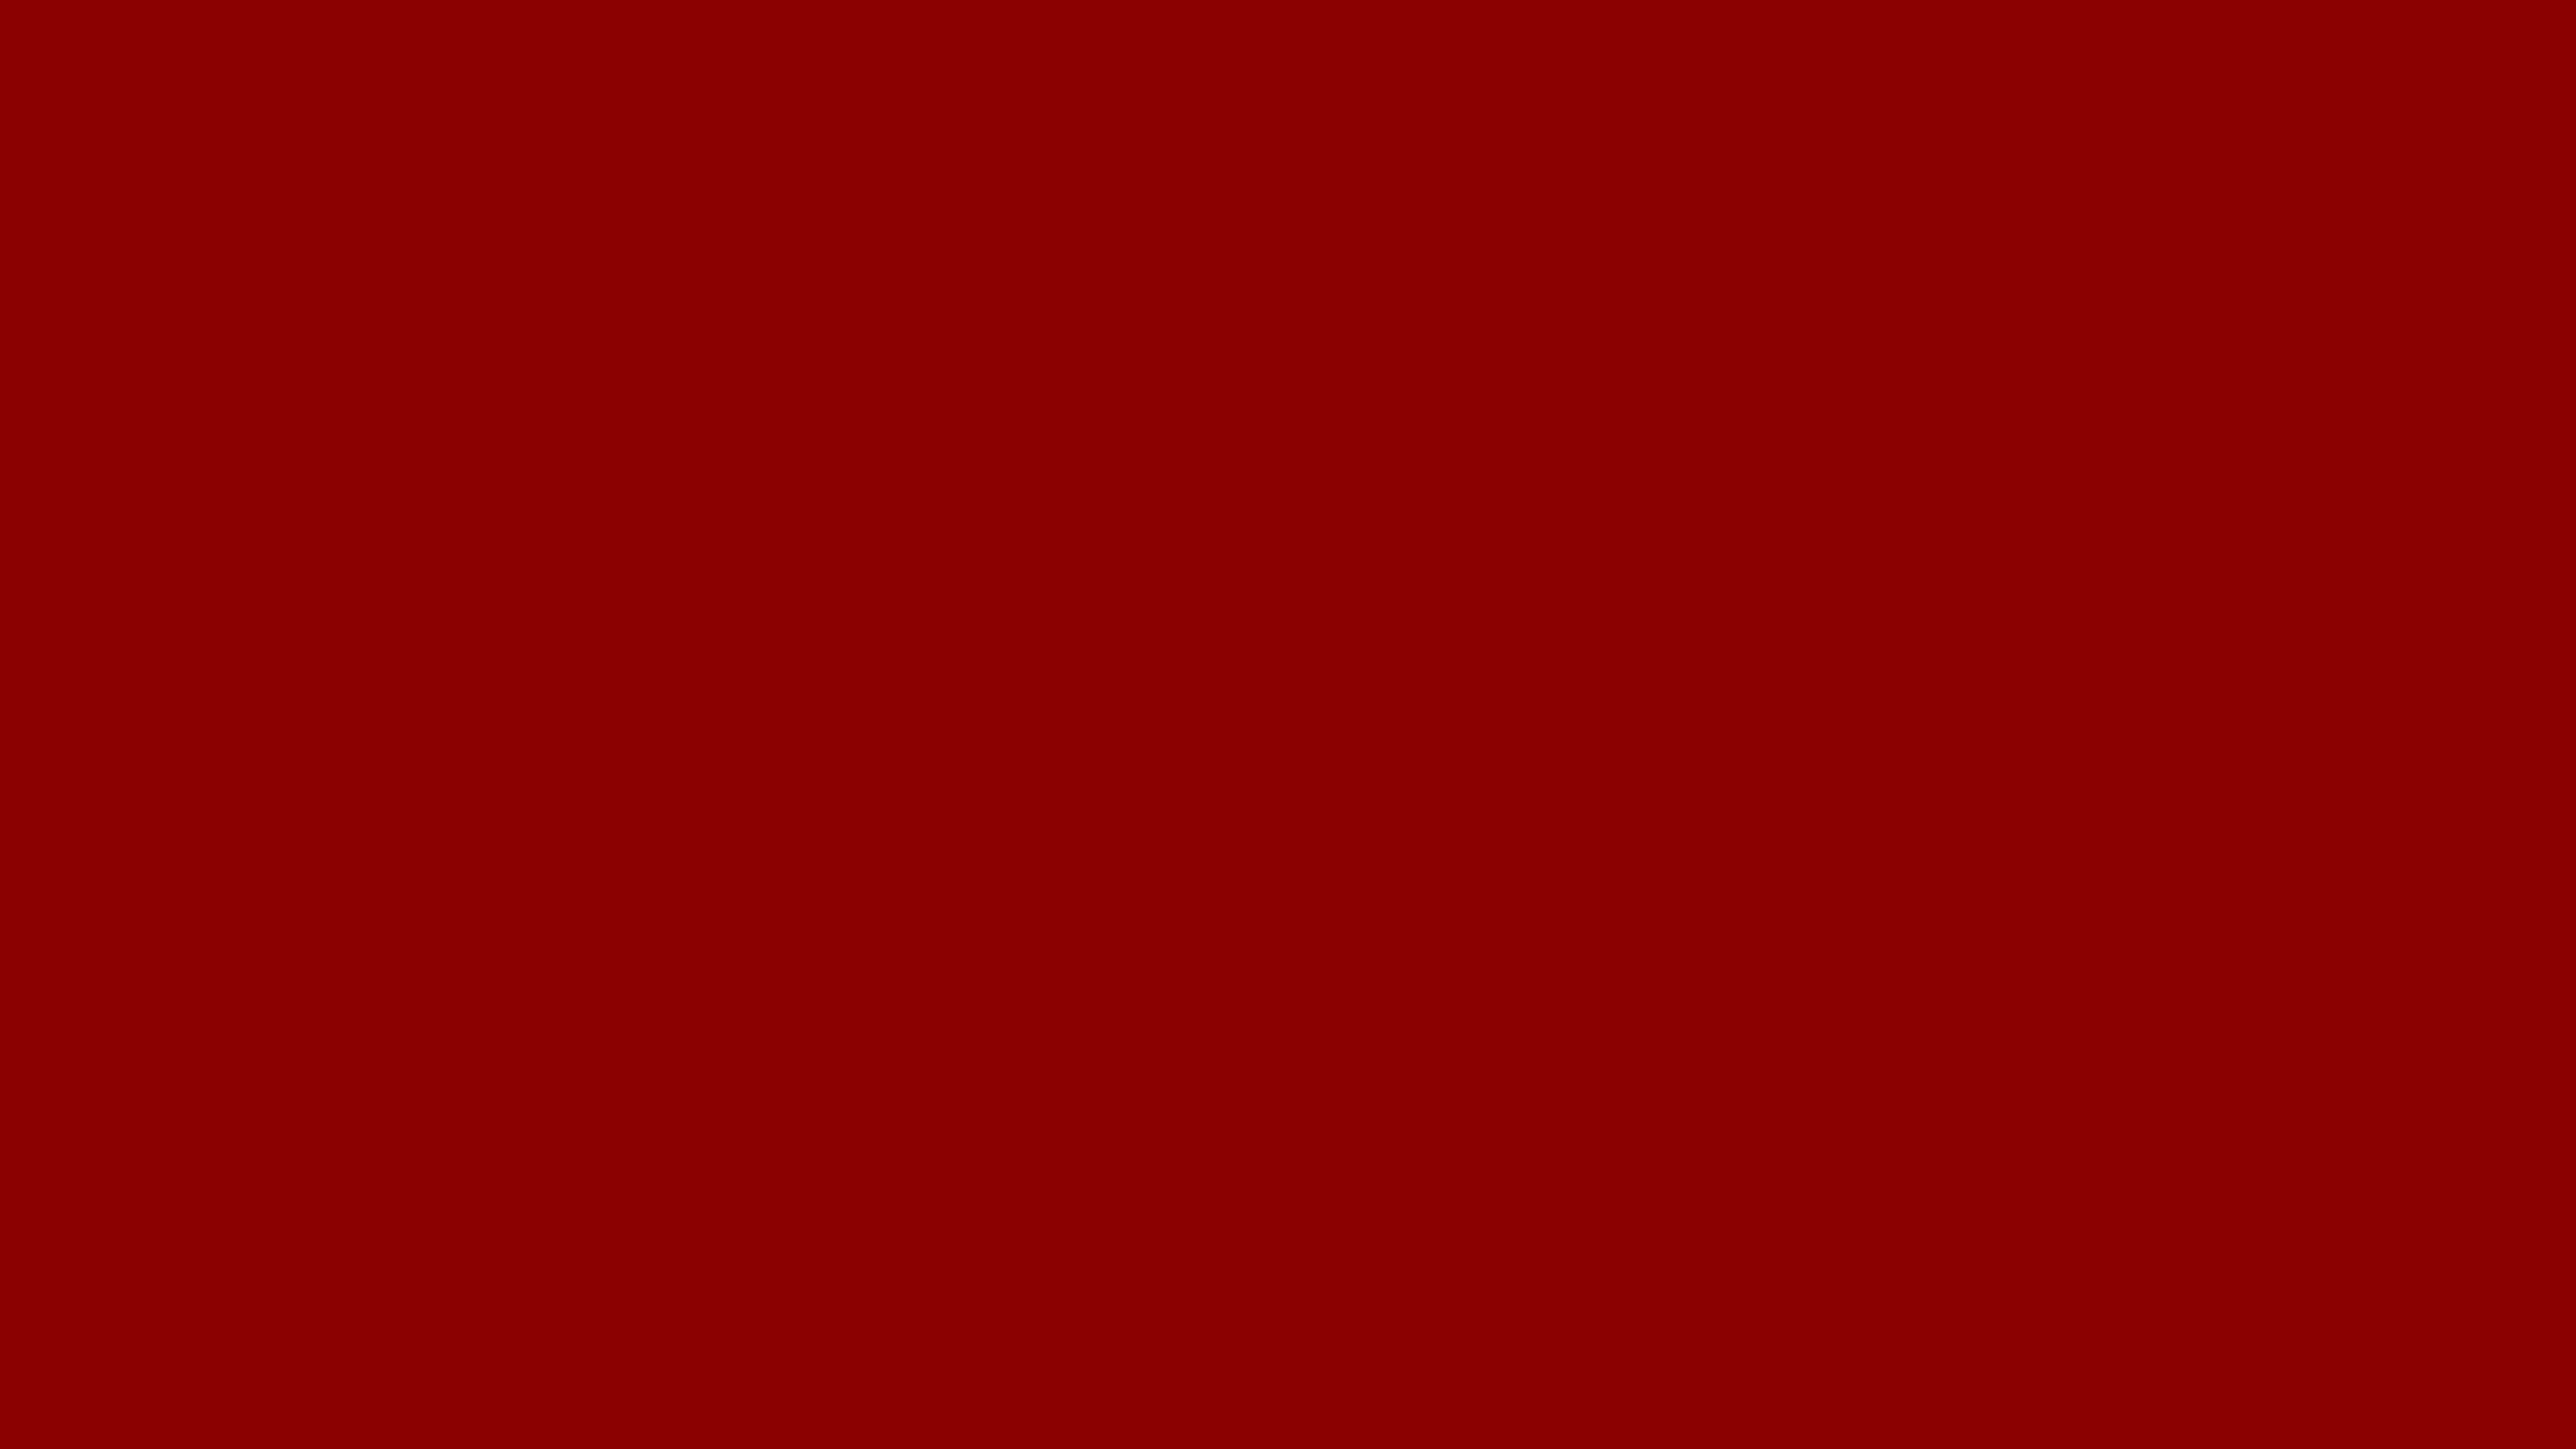 5120x2880 Dark Red Solid Color Background